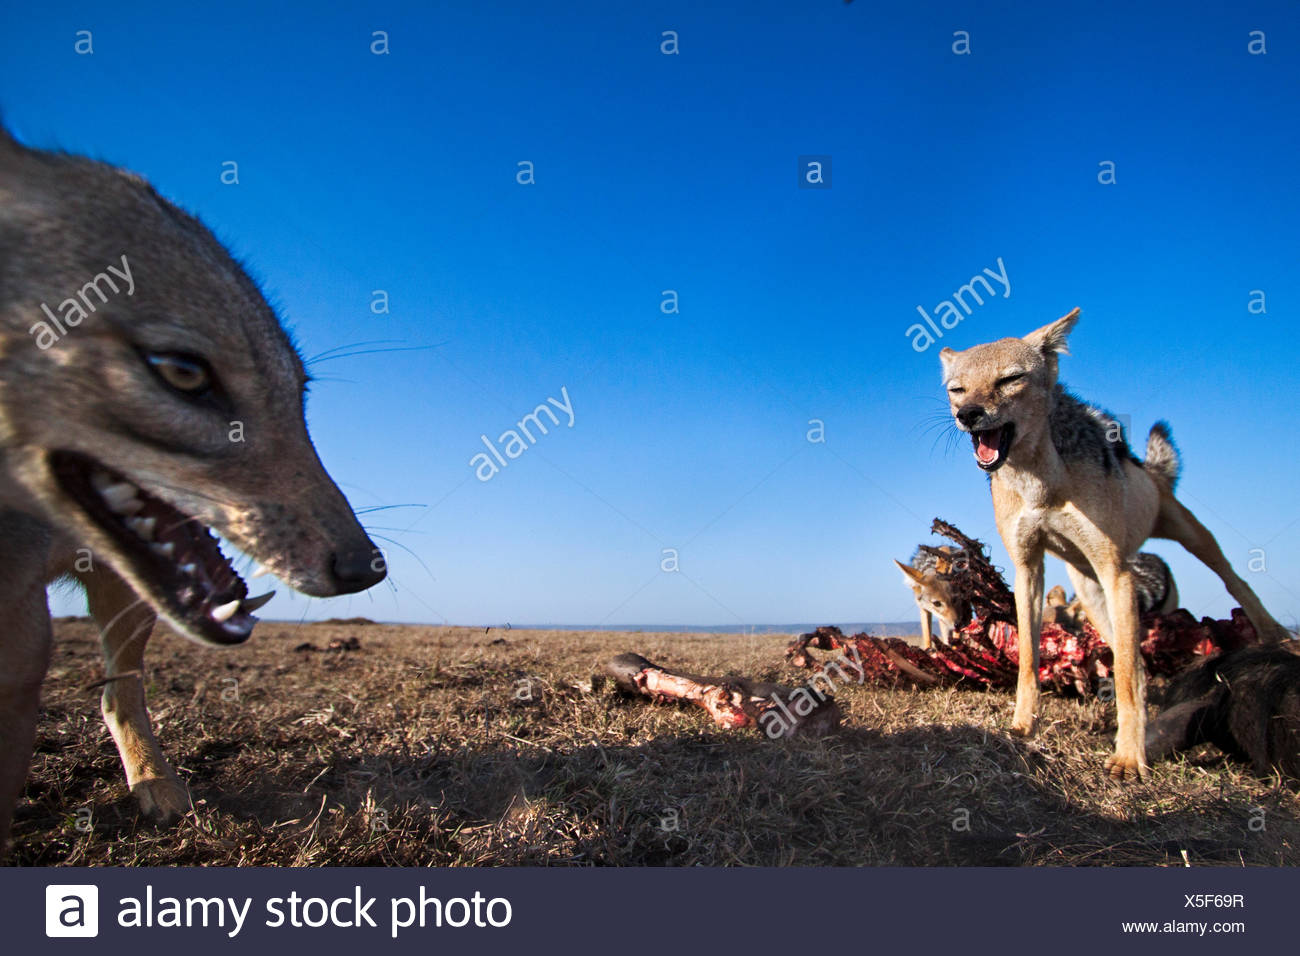 Black-backed jackals (Canis mesomelas) feeding on wildebeest carcass. Masai Mara National Reserve Kenya. Taken remote wide angle camera. - Stock Image